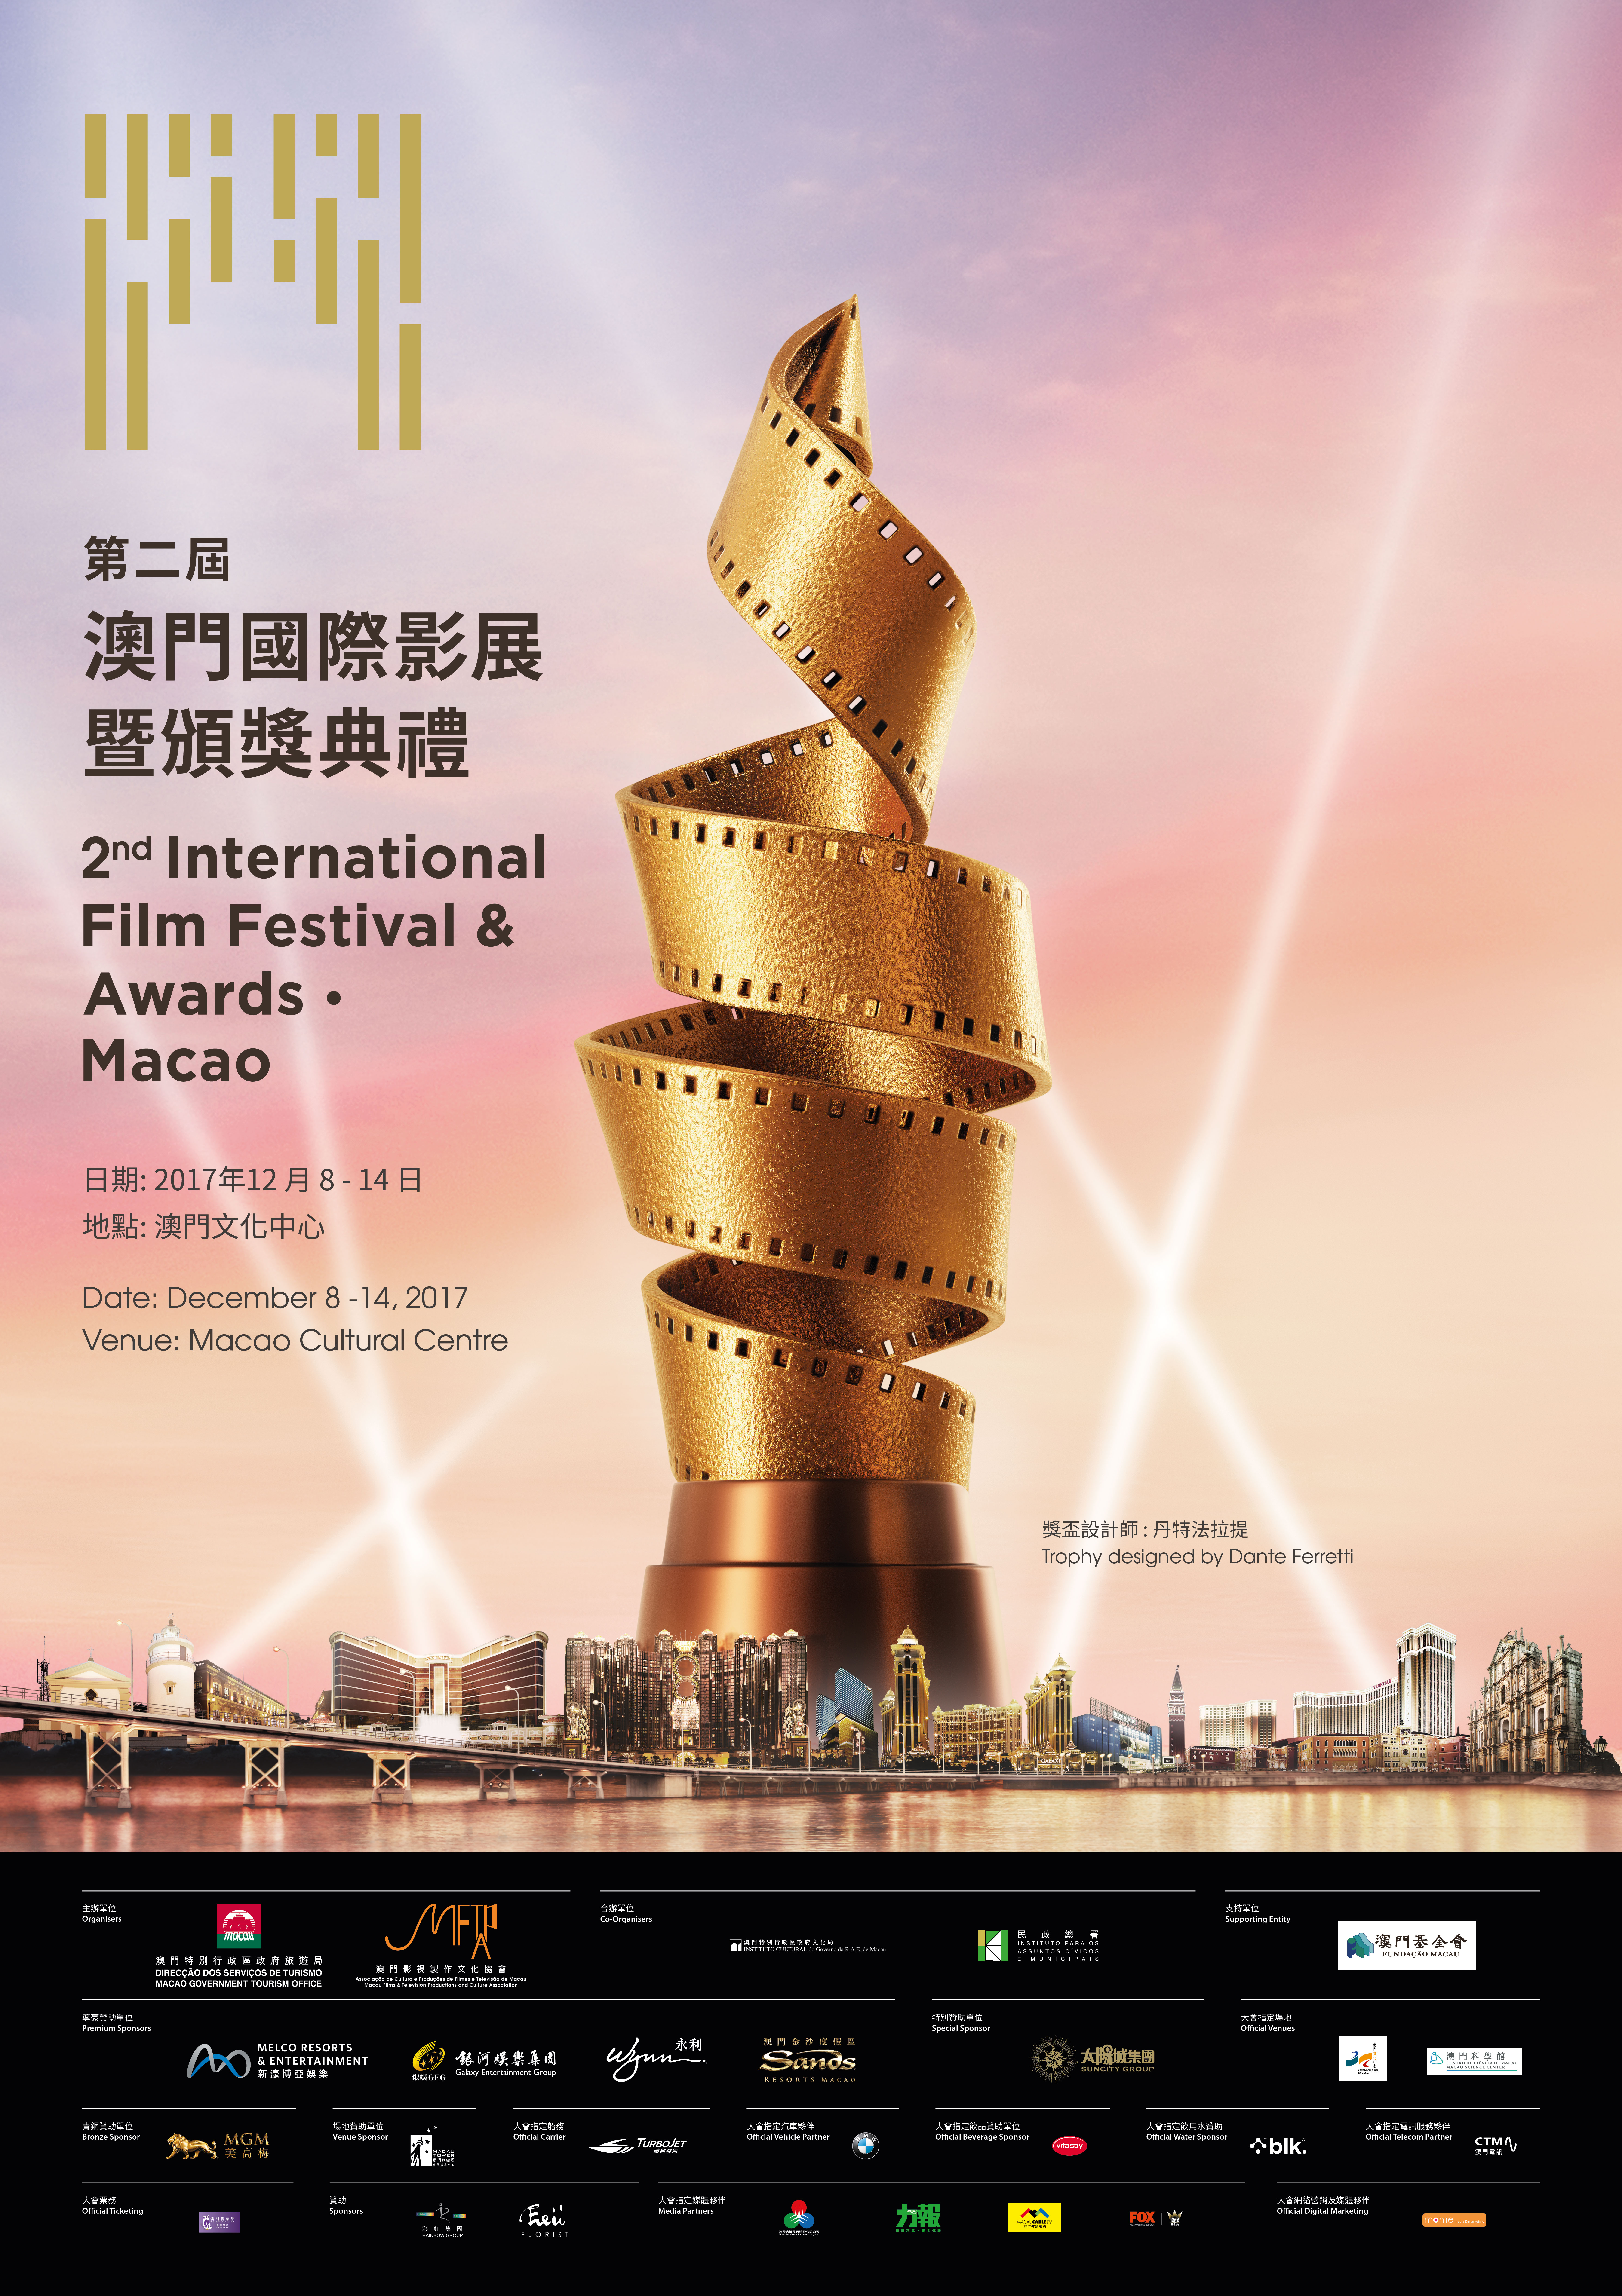 MACAO HOSTS 2ND-ANNUAL INTERNATIONAL FILM FESTIVAL